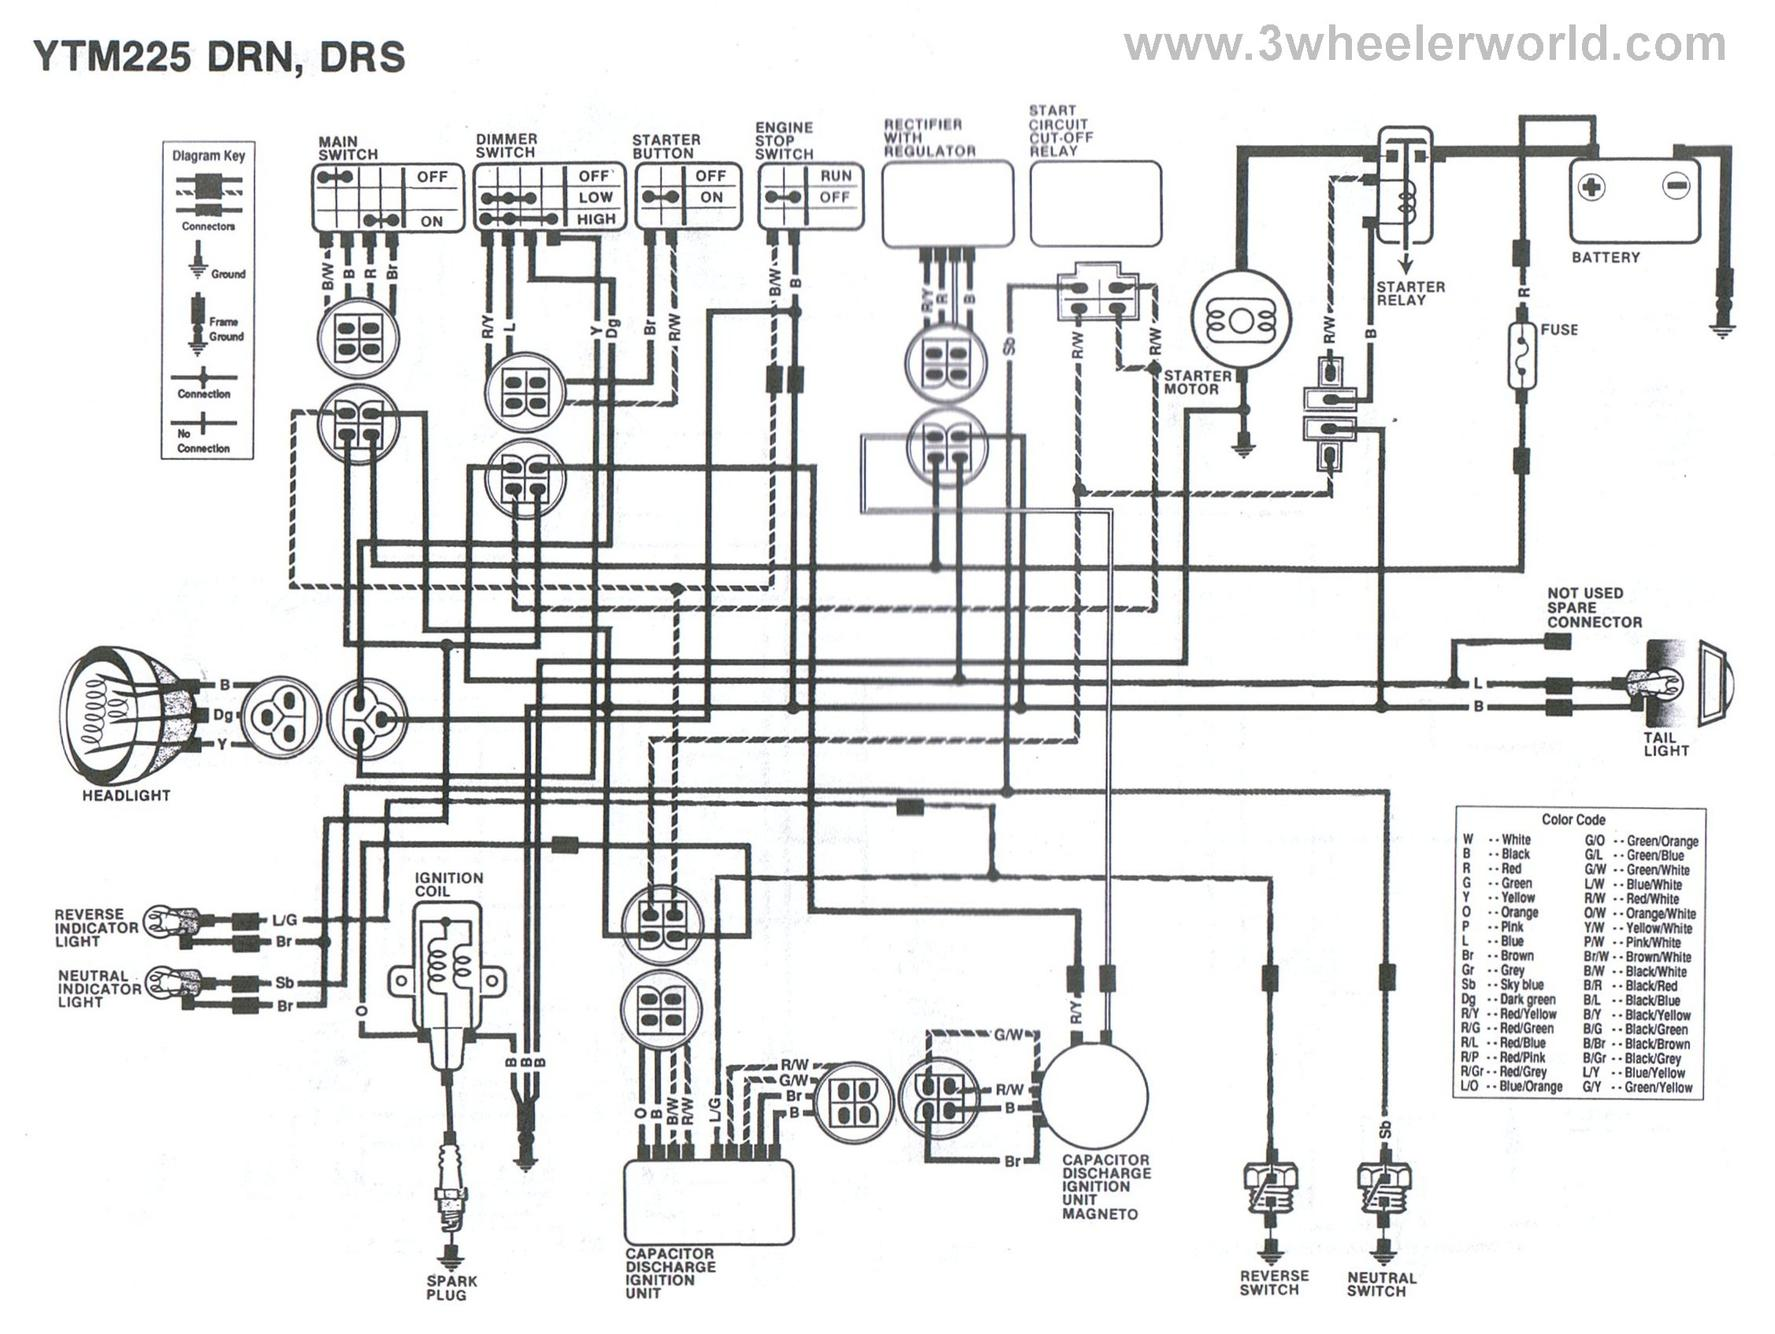 Amazing Kawasaki Mule 600 Wiring Diagram Collection - Electrical and ...